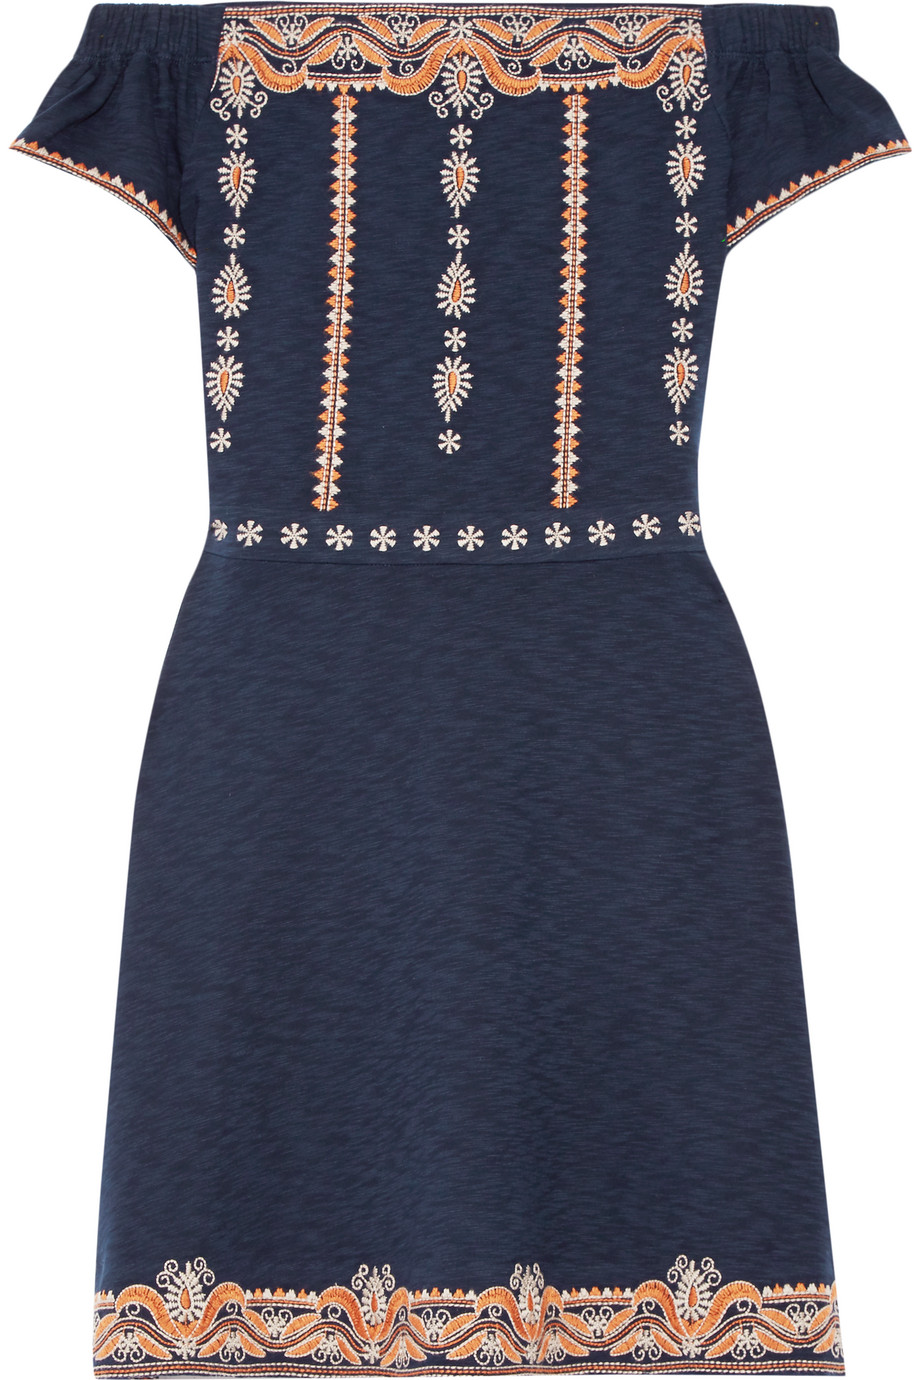 Tory Burch Nell Off-the-Shoulder Embroidered Cotton Mini Dress, Navy, Women's - Embroidered